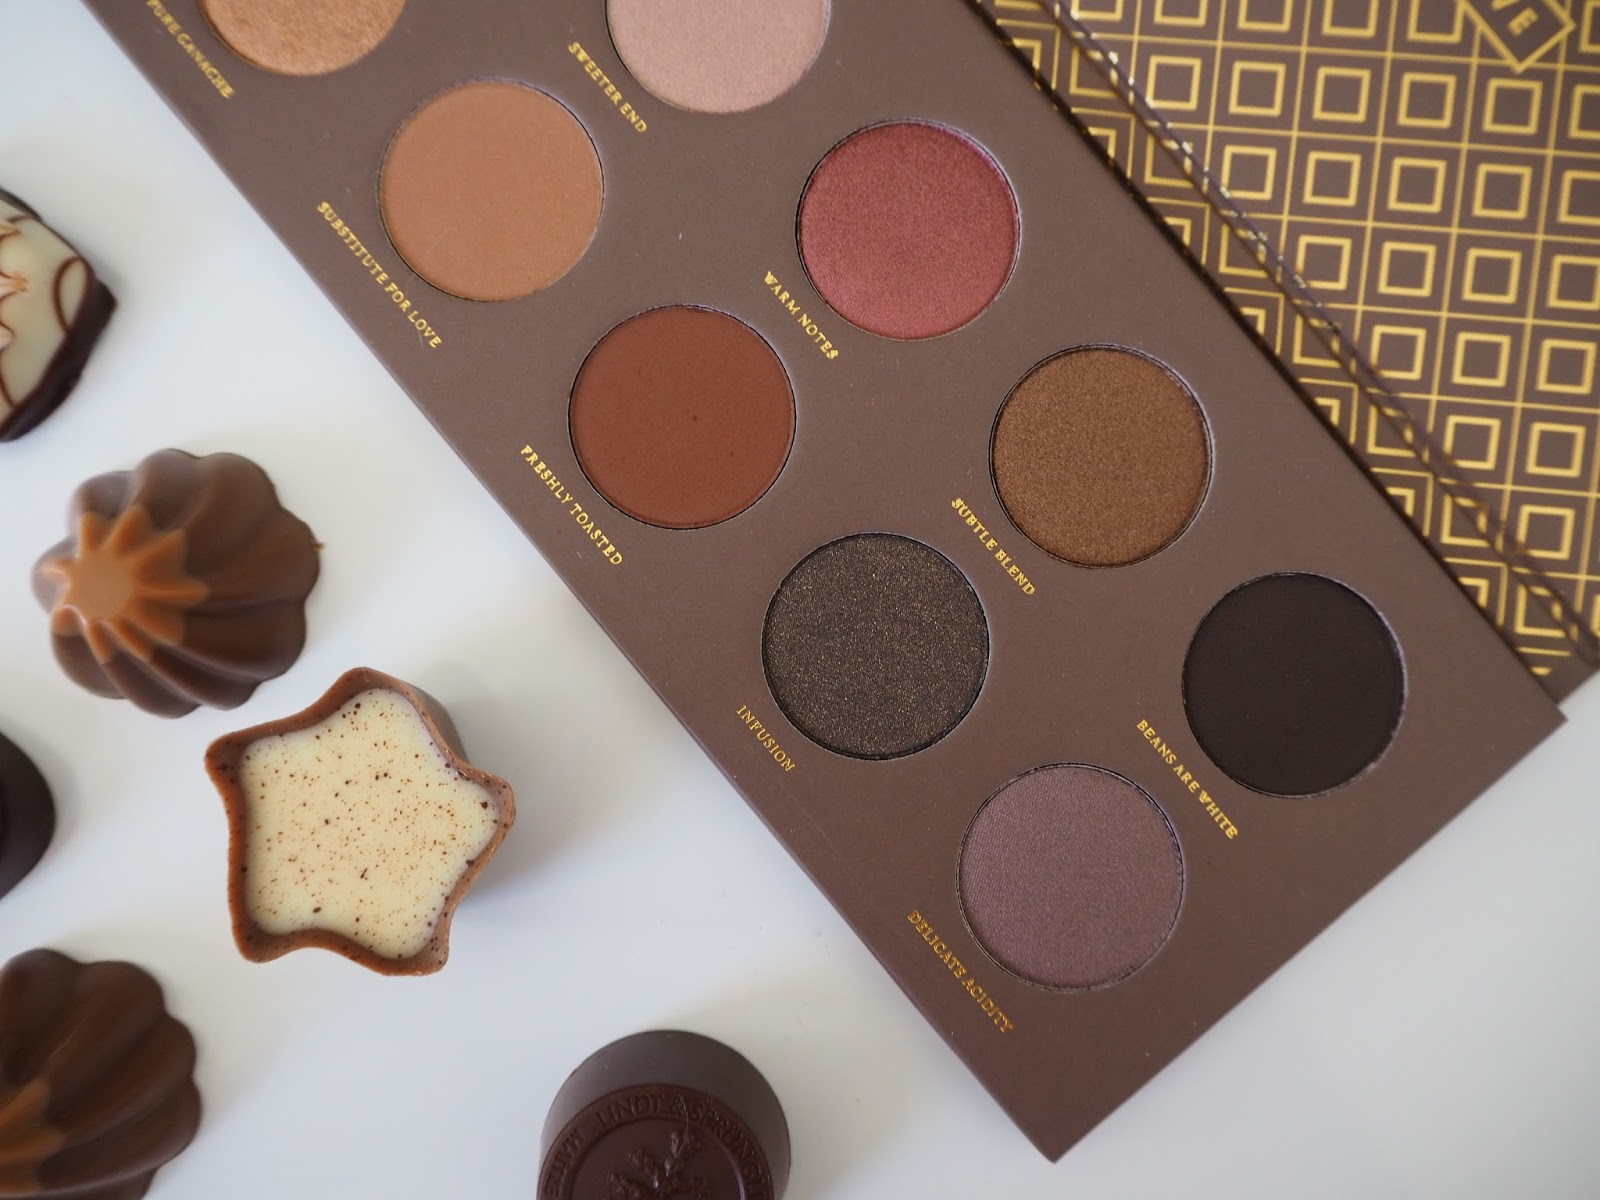 Zoeva Cocoa Blend eyeshadow palette review